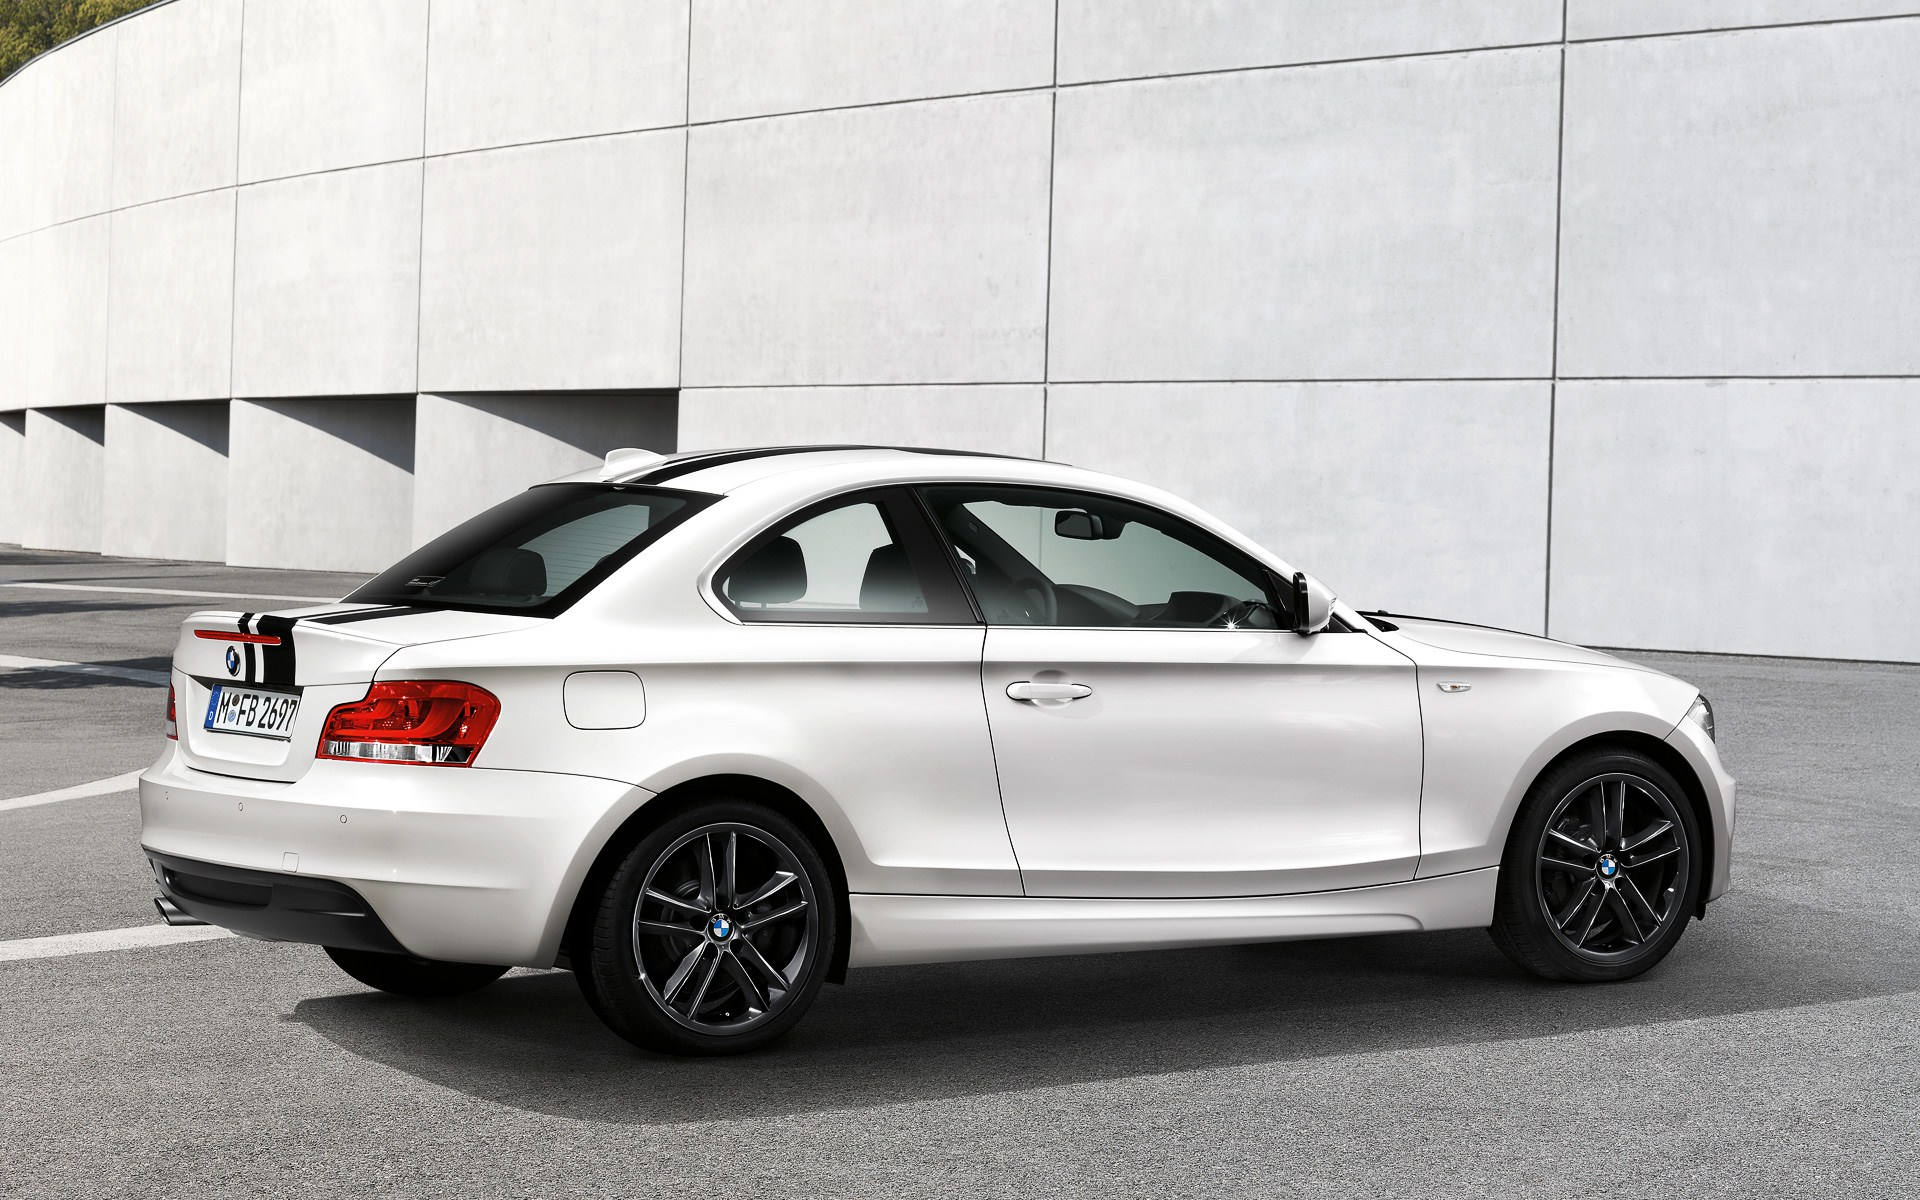 bmw 1er coupe (e82) 2015 images #2